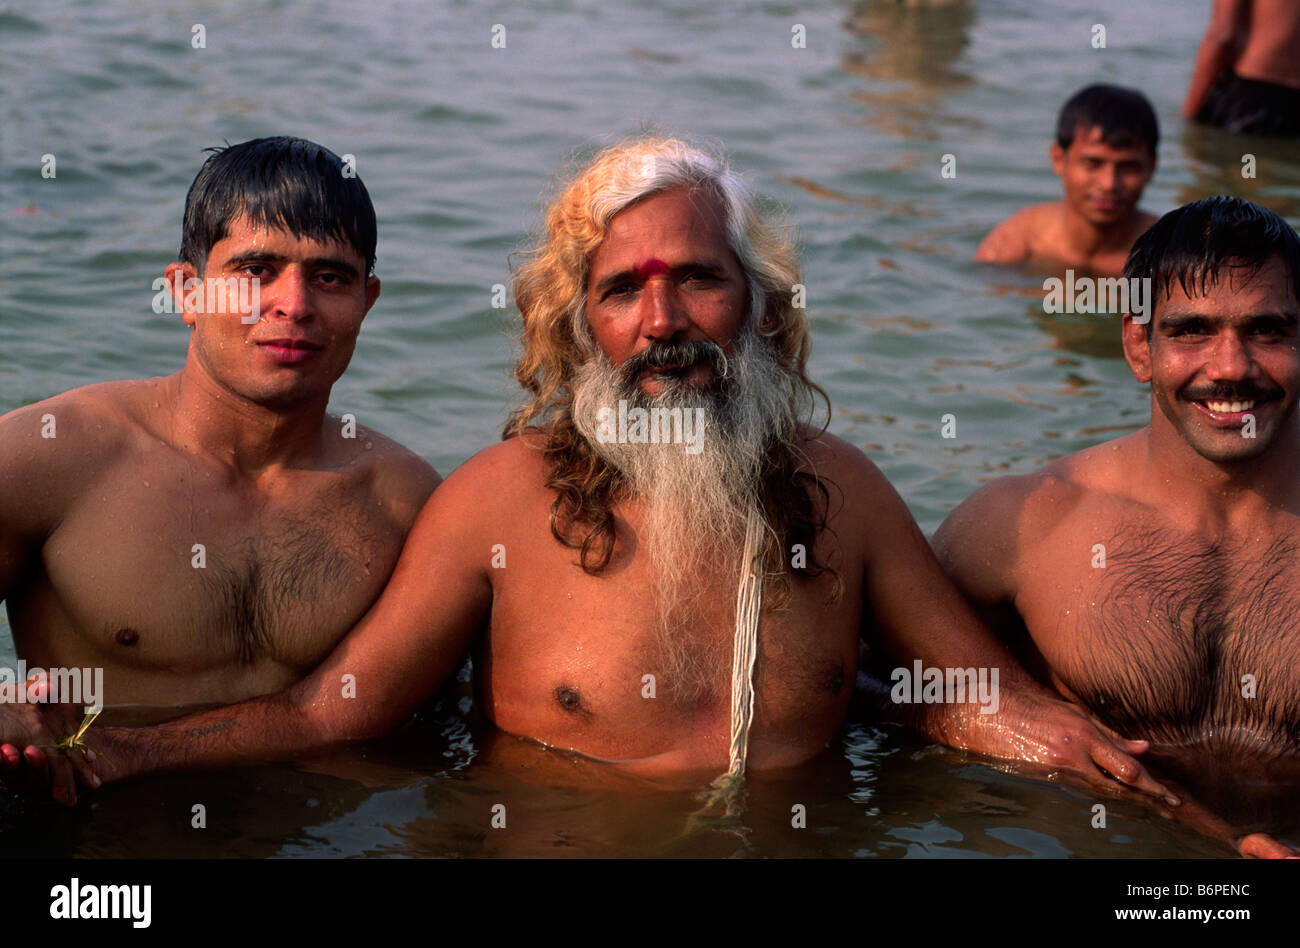 c246a0d1deb india, uttar pradesh, allahabad, sangam, people bathing at the confluence  of the